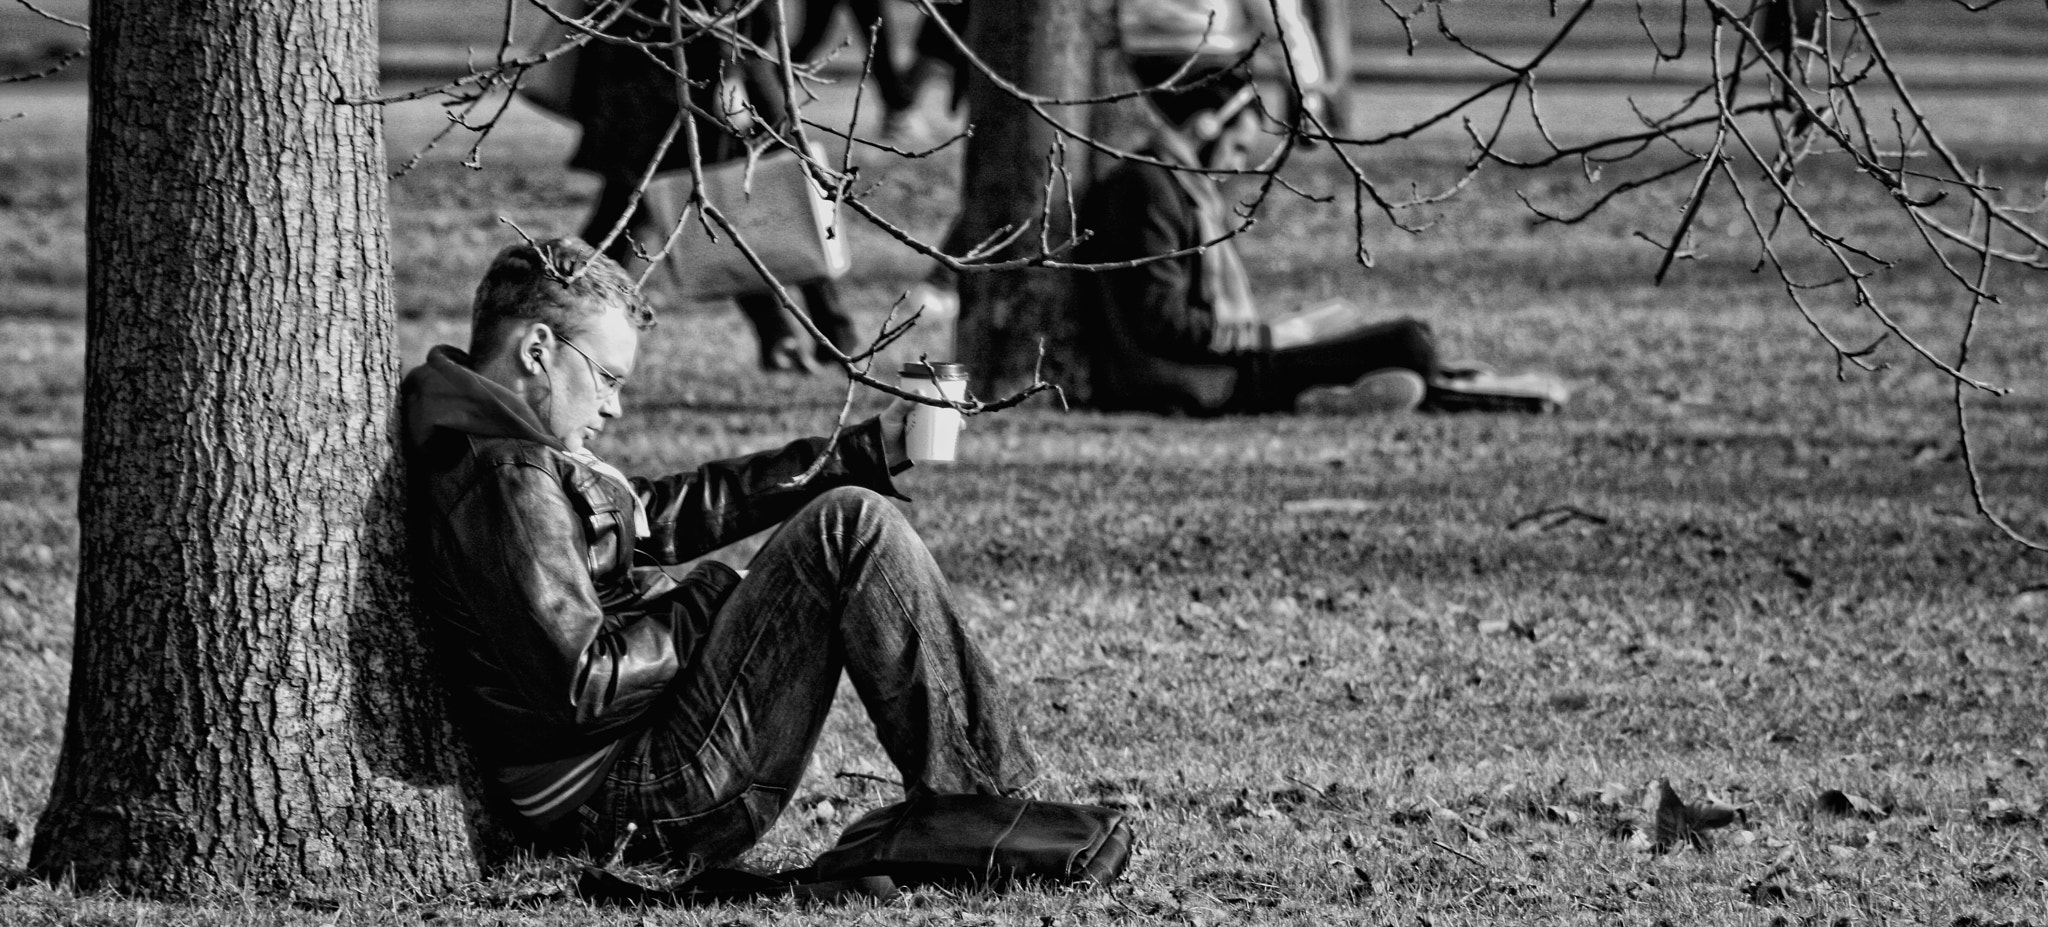 Photograph Relax, Take it Easy by Prad Patel on 500px